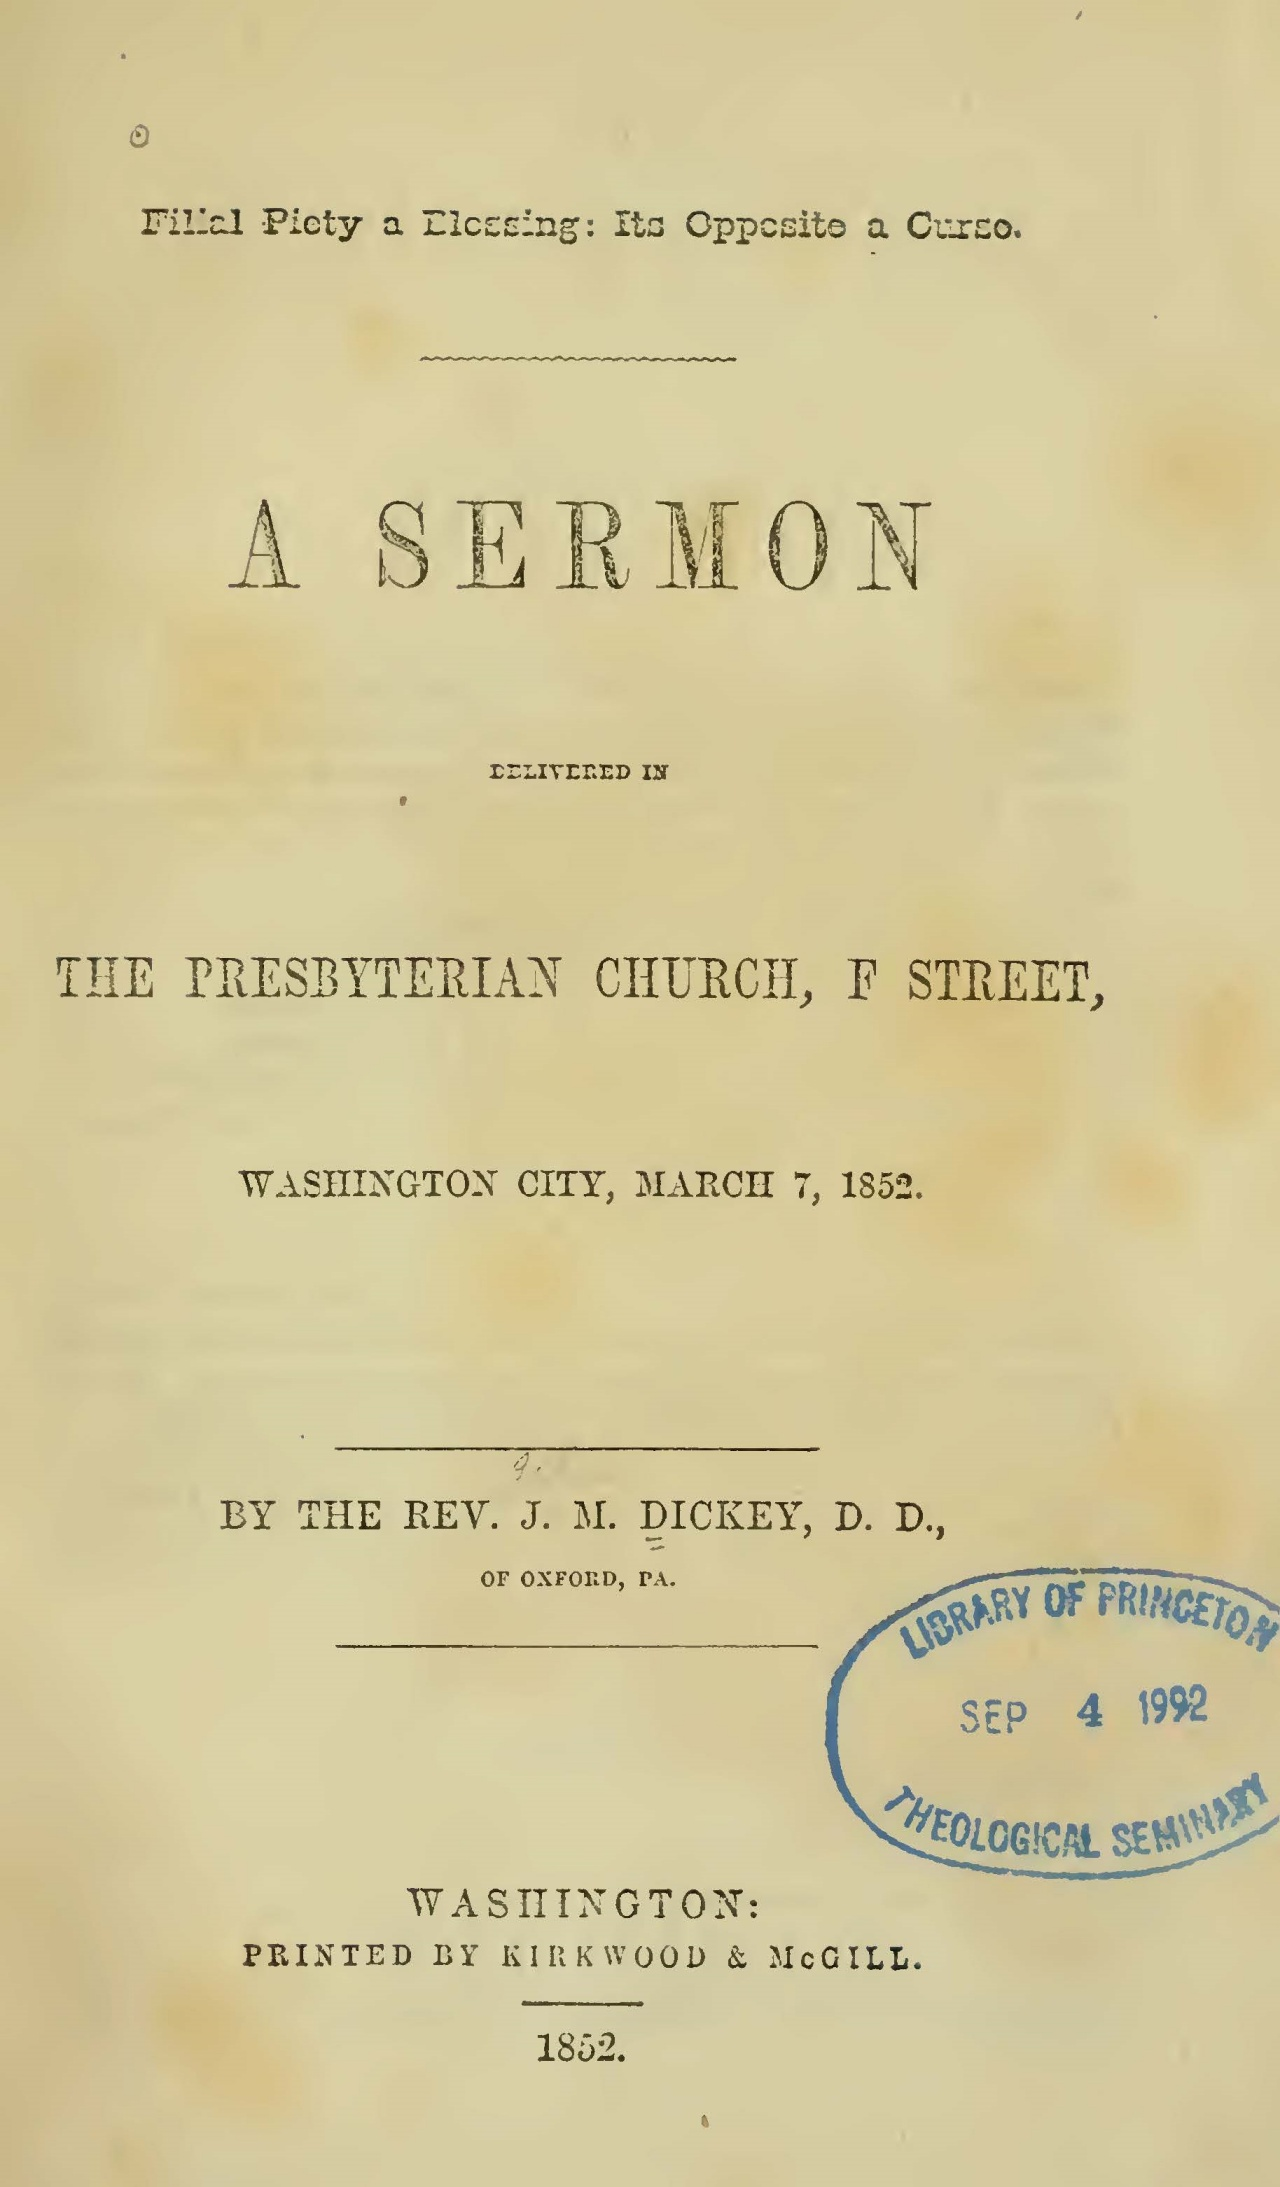 Dickey, John Miller, Filial Piety a Blessing, Its Opposite a Curse A Sermon Title Page.jpg